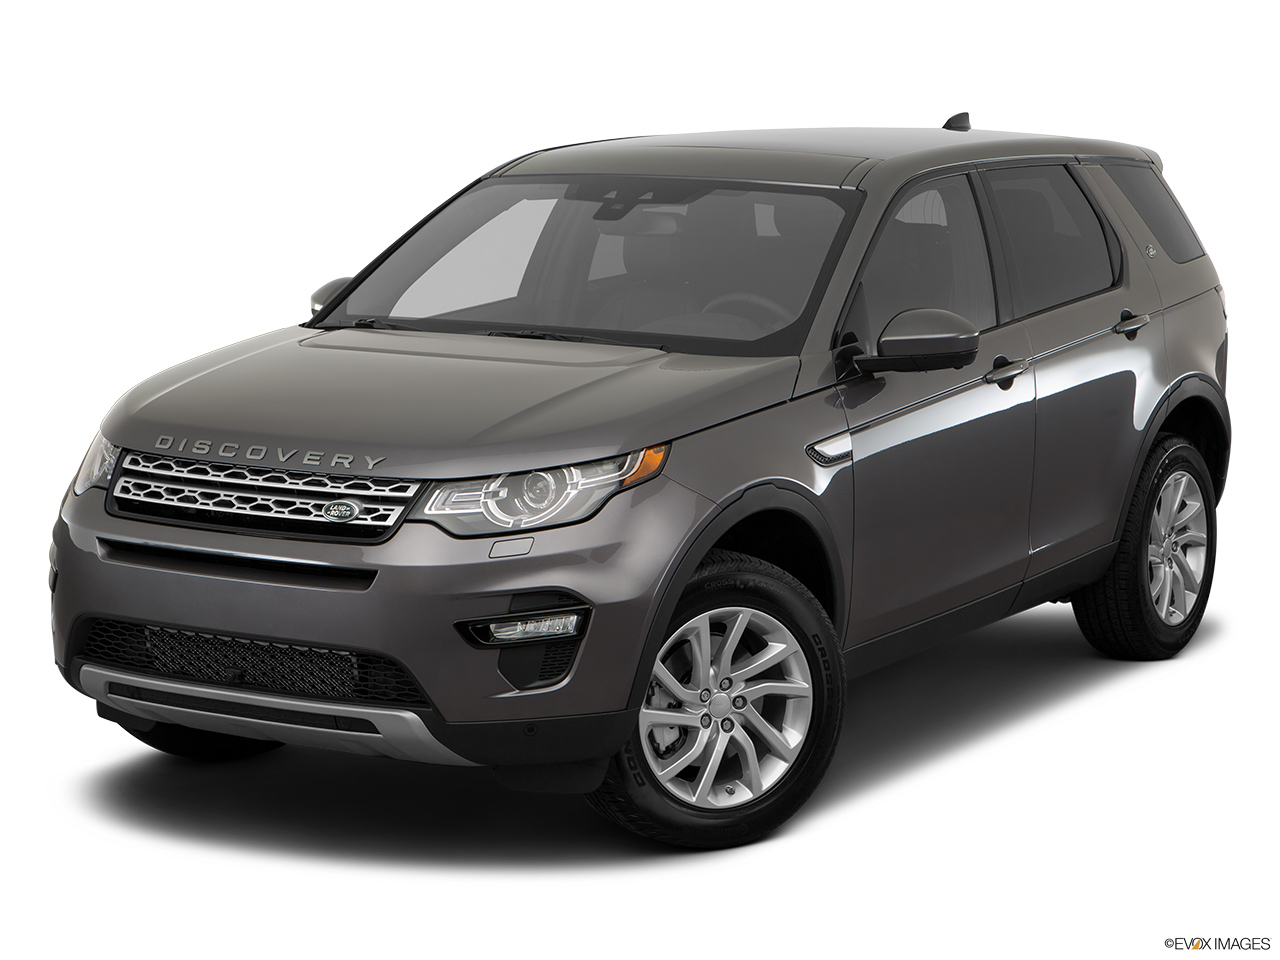 land rover discovery sport 2017 2 0l si4 se 4wd in egypt new car prices specs reviews. Black Bedroom Furniture Sets. Home Design Ideas